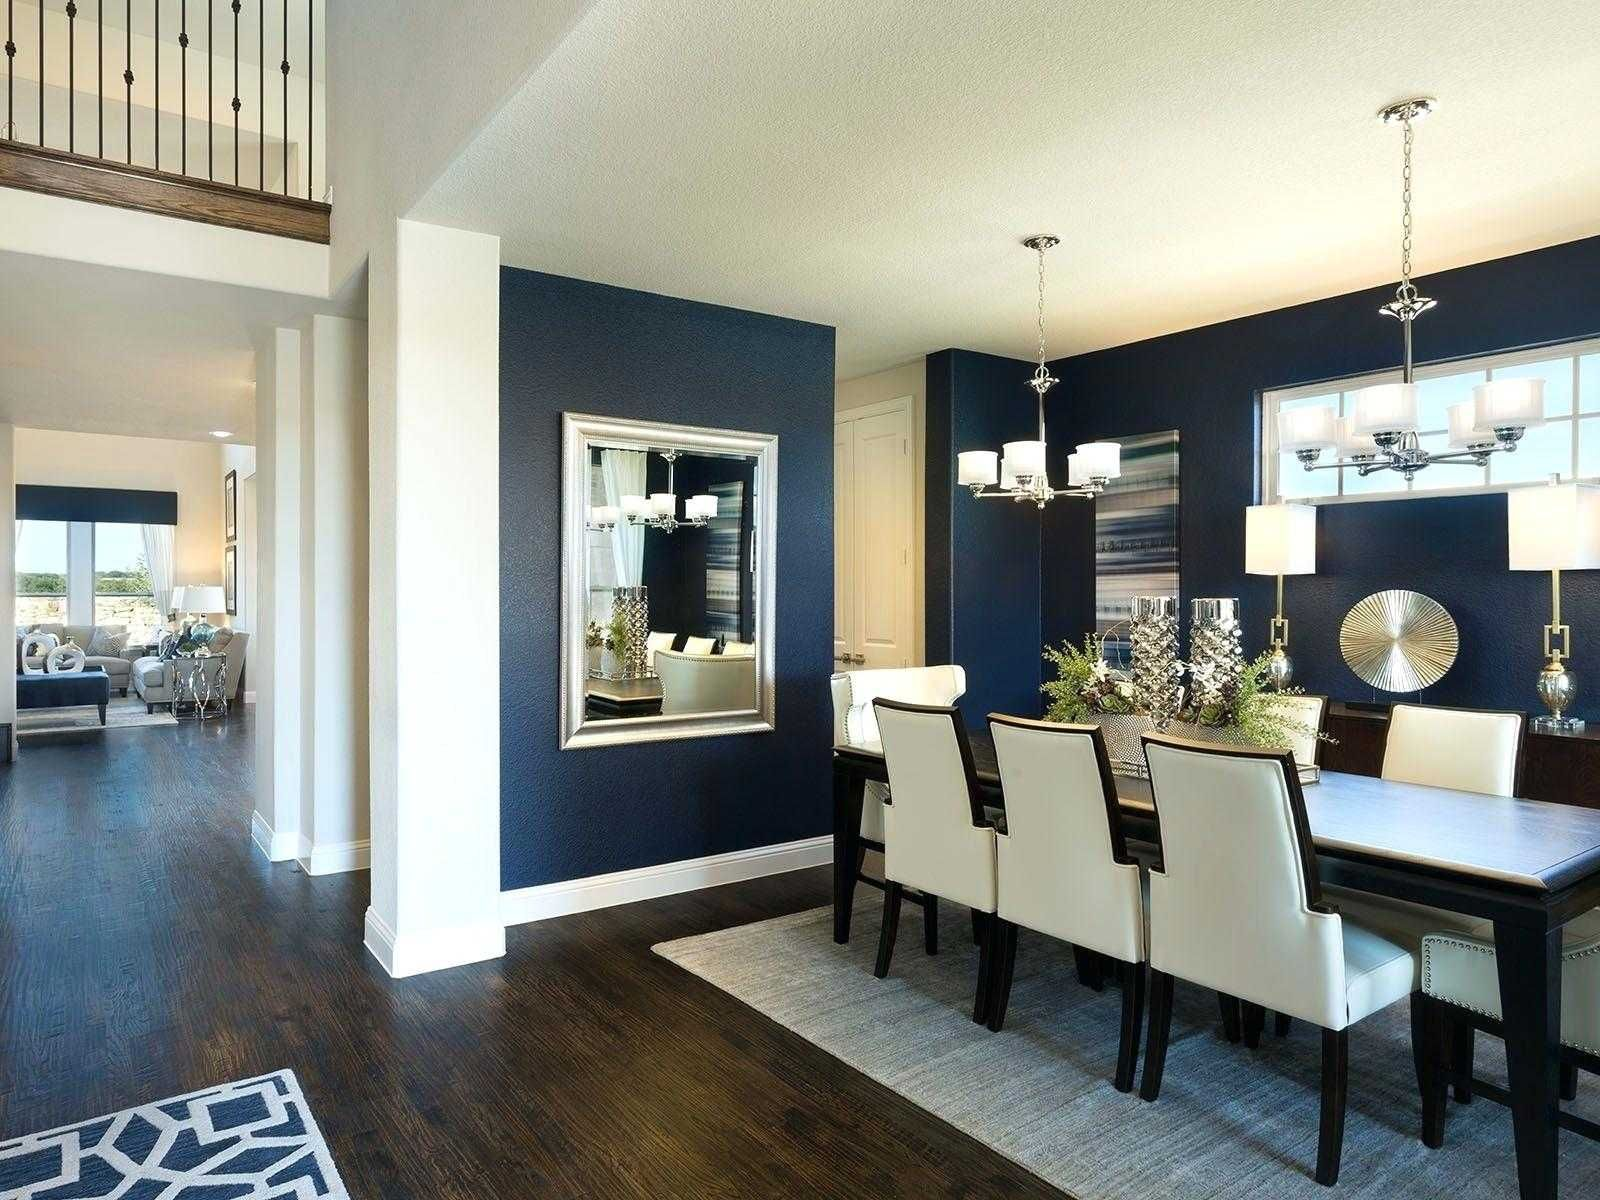 Excellent Photo Of Townhouse Decorating Ideas Modern Dining Room Navy Townhouse Decorating Dining Room Blue